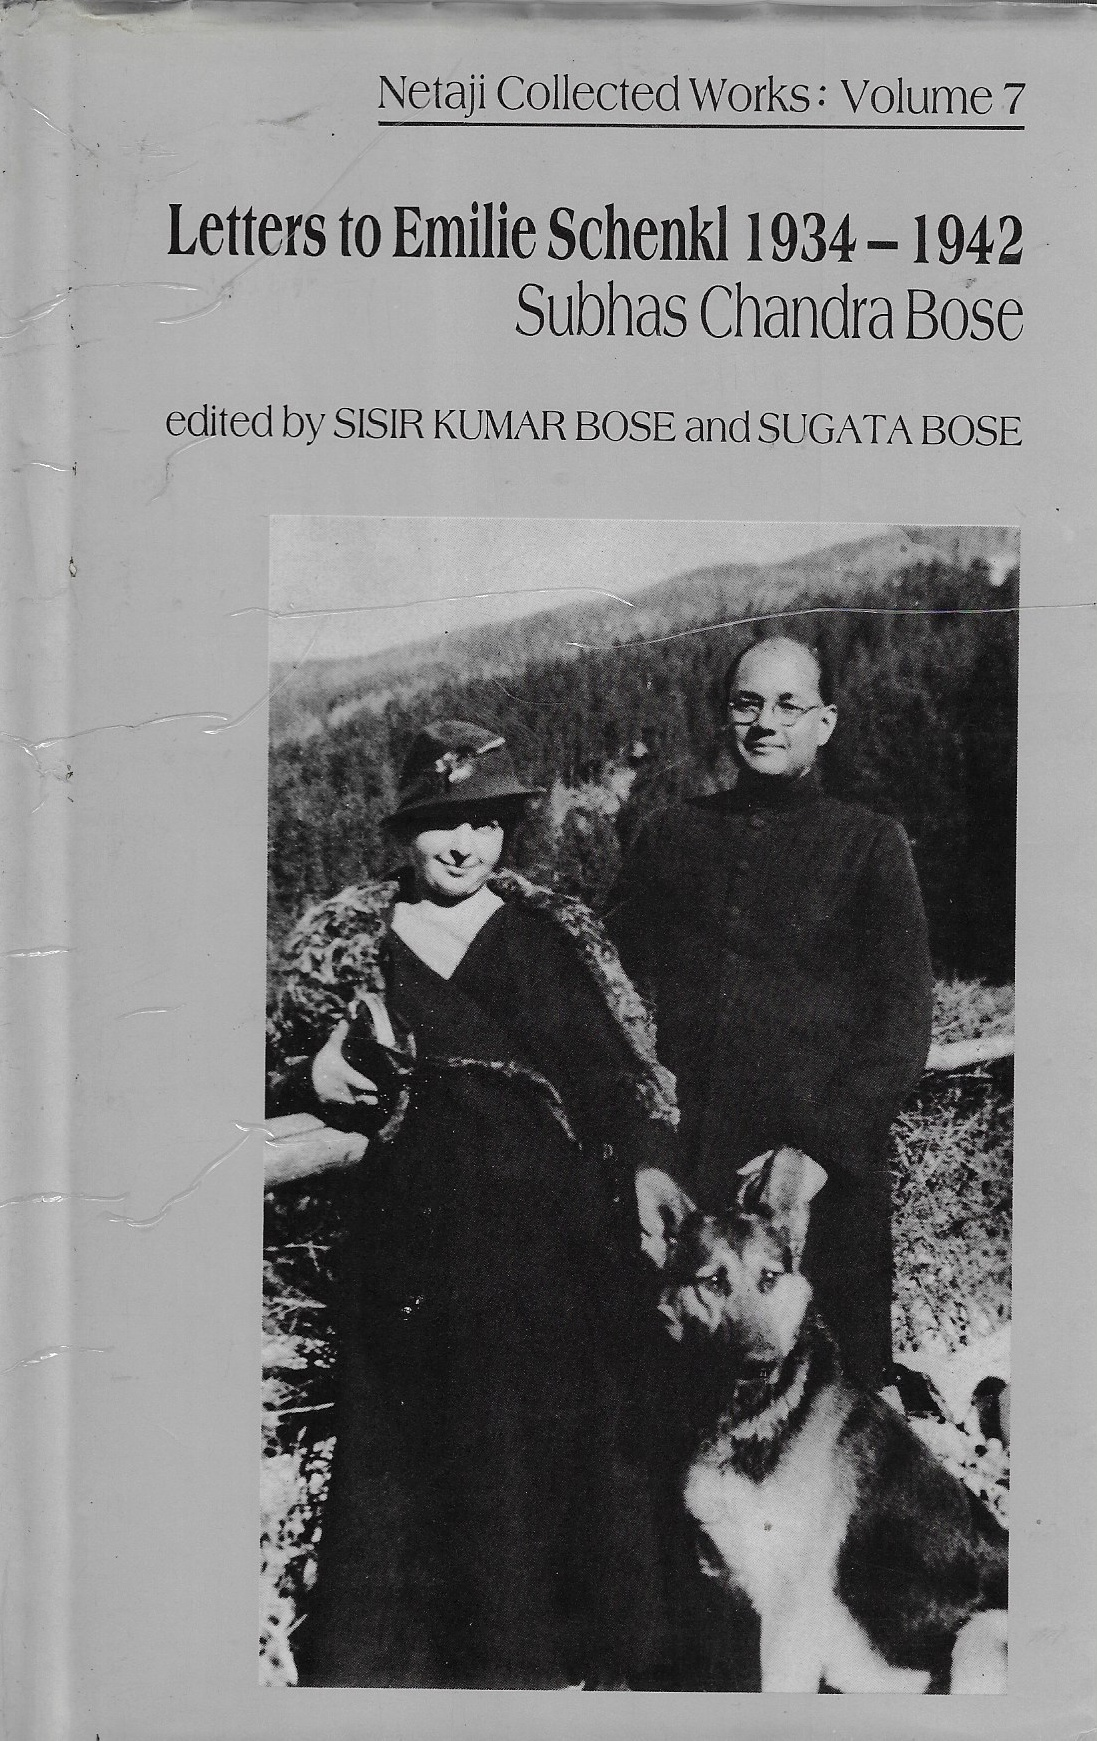 Image for Netaji Collected Works: Letters to Emilie Schenkl, 1934-42 Vol 7